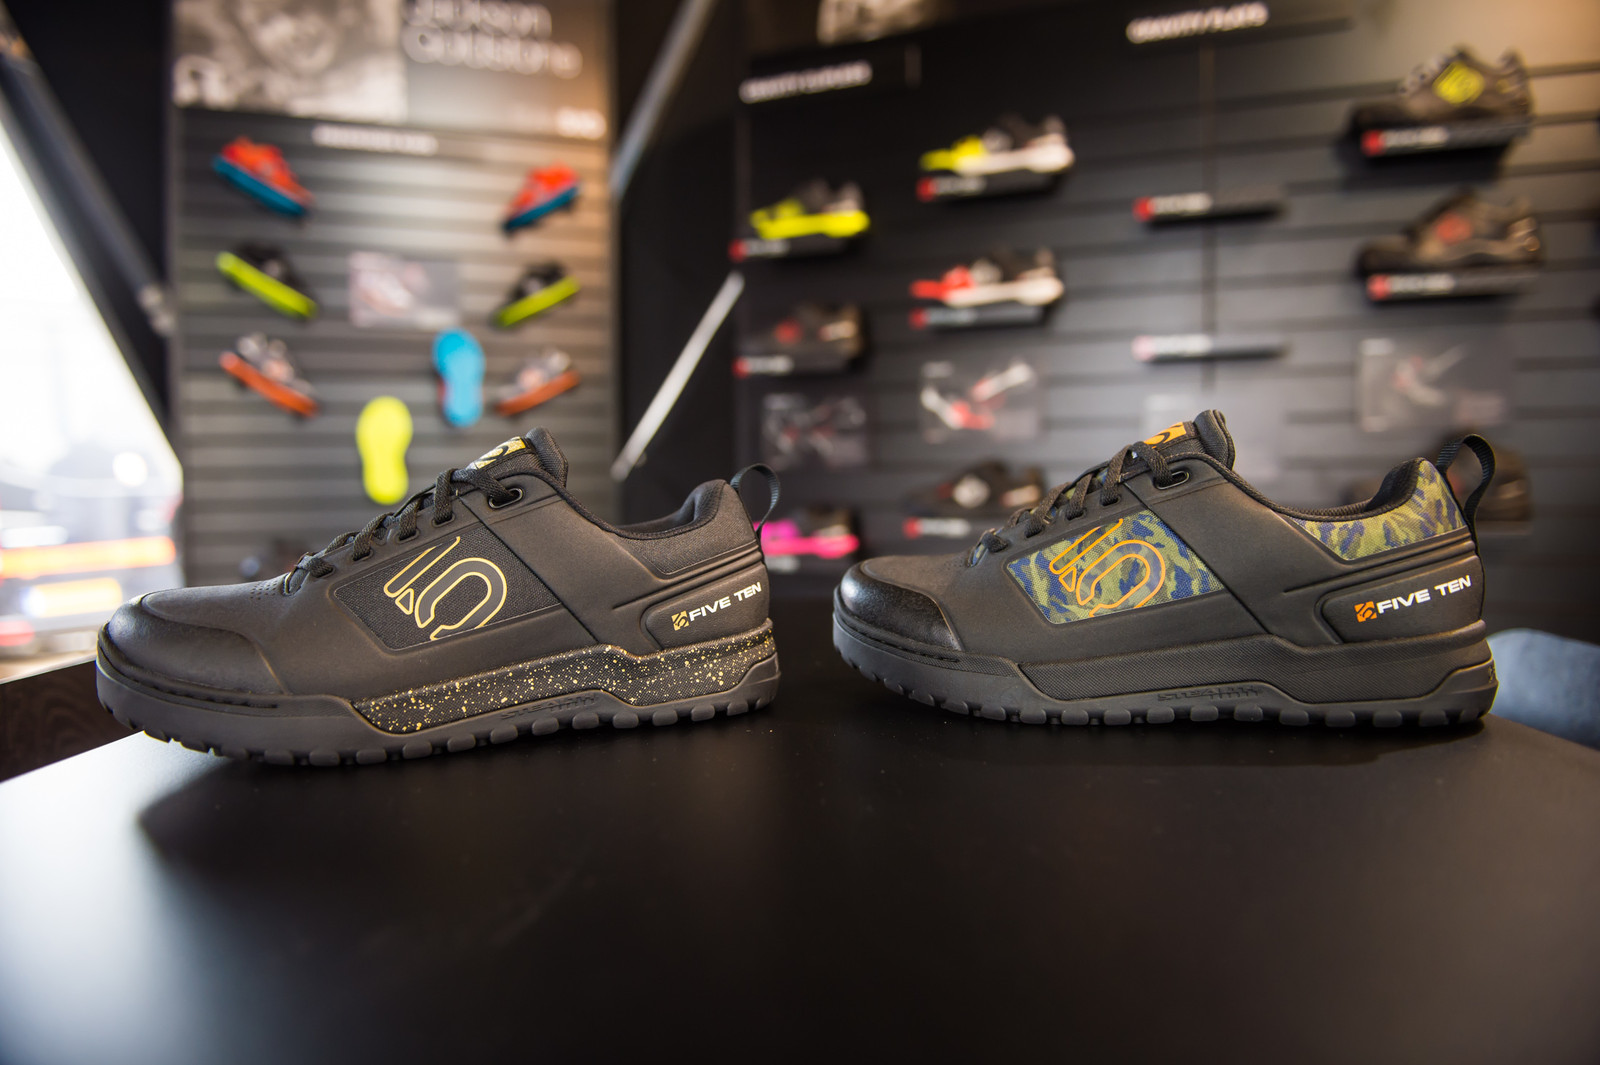 908812da14f New Five Ten MTB Shoes at Eurobike - Mountain Bikes Feature Stories ...